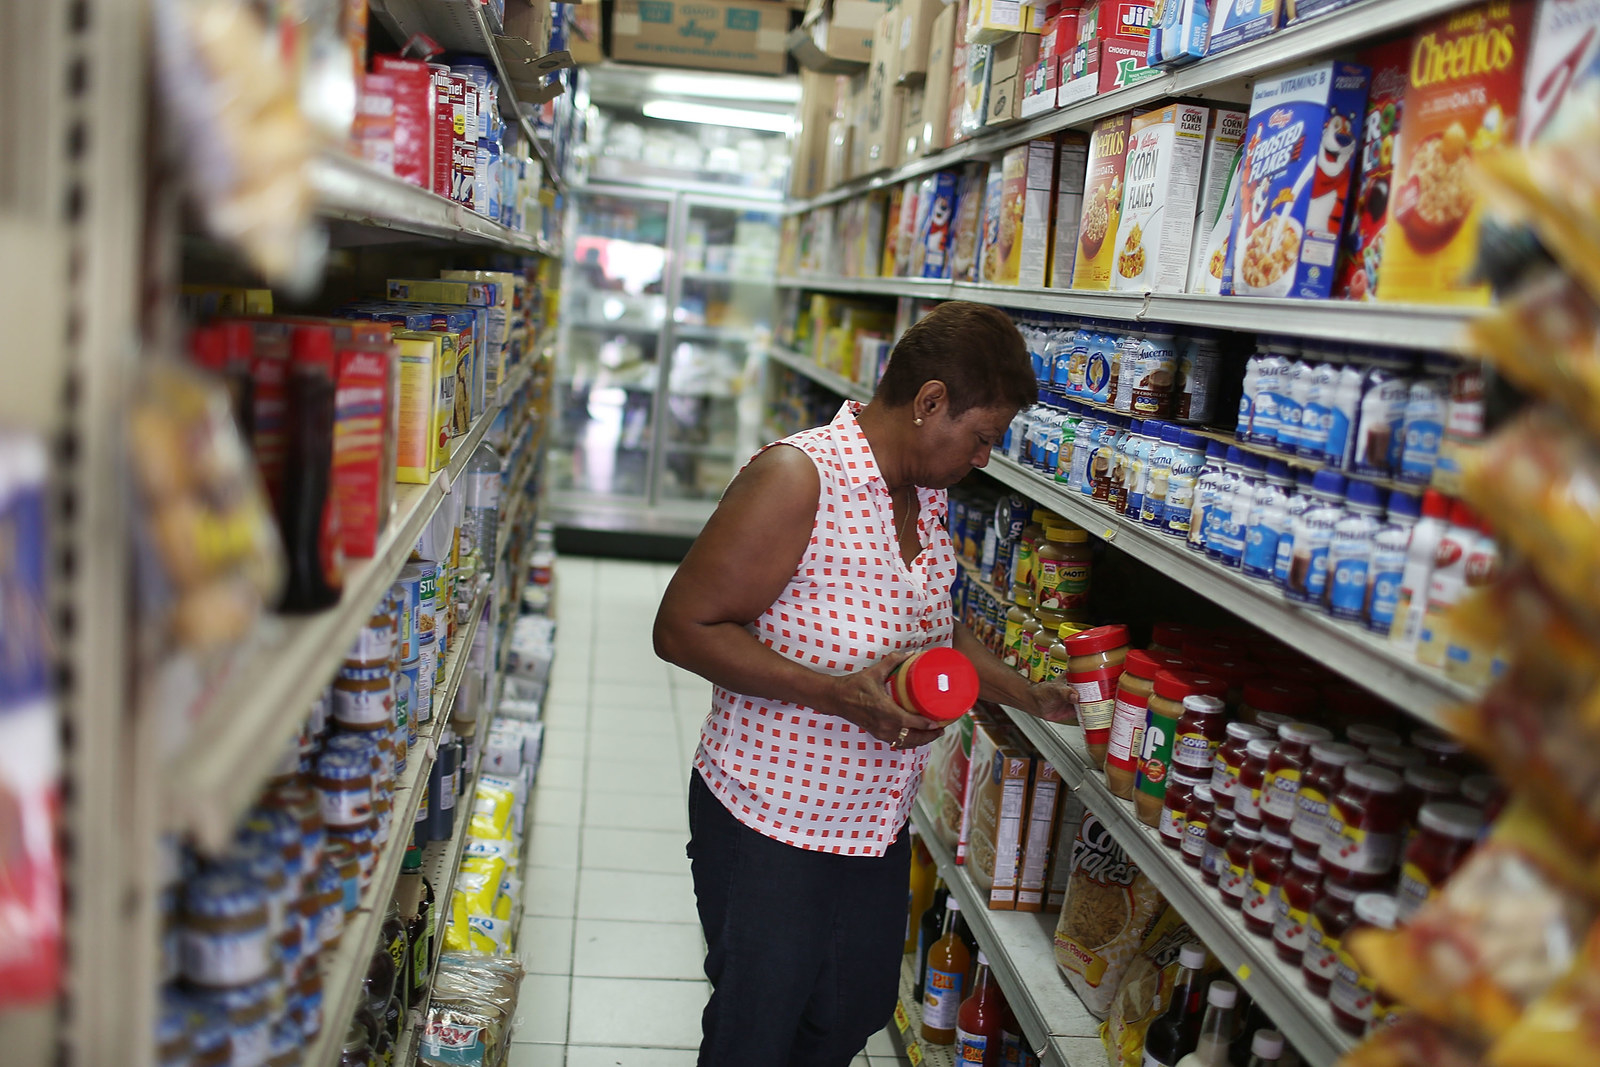 A customer shops for items in a grocery store in San Juan, Puerto Rico.